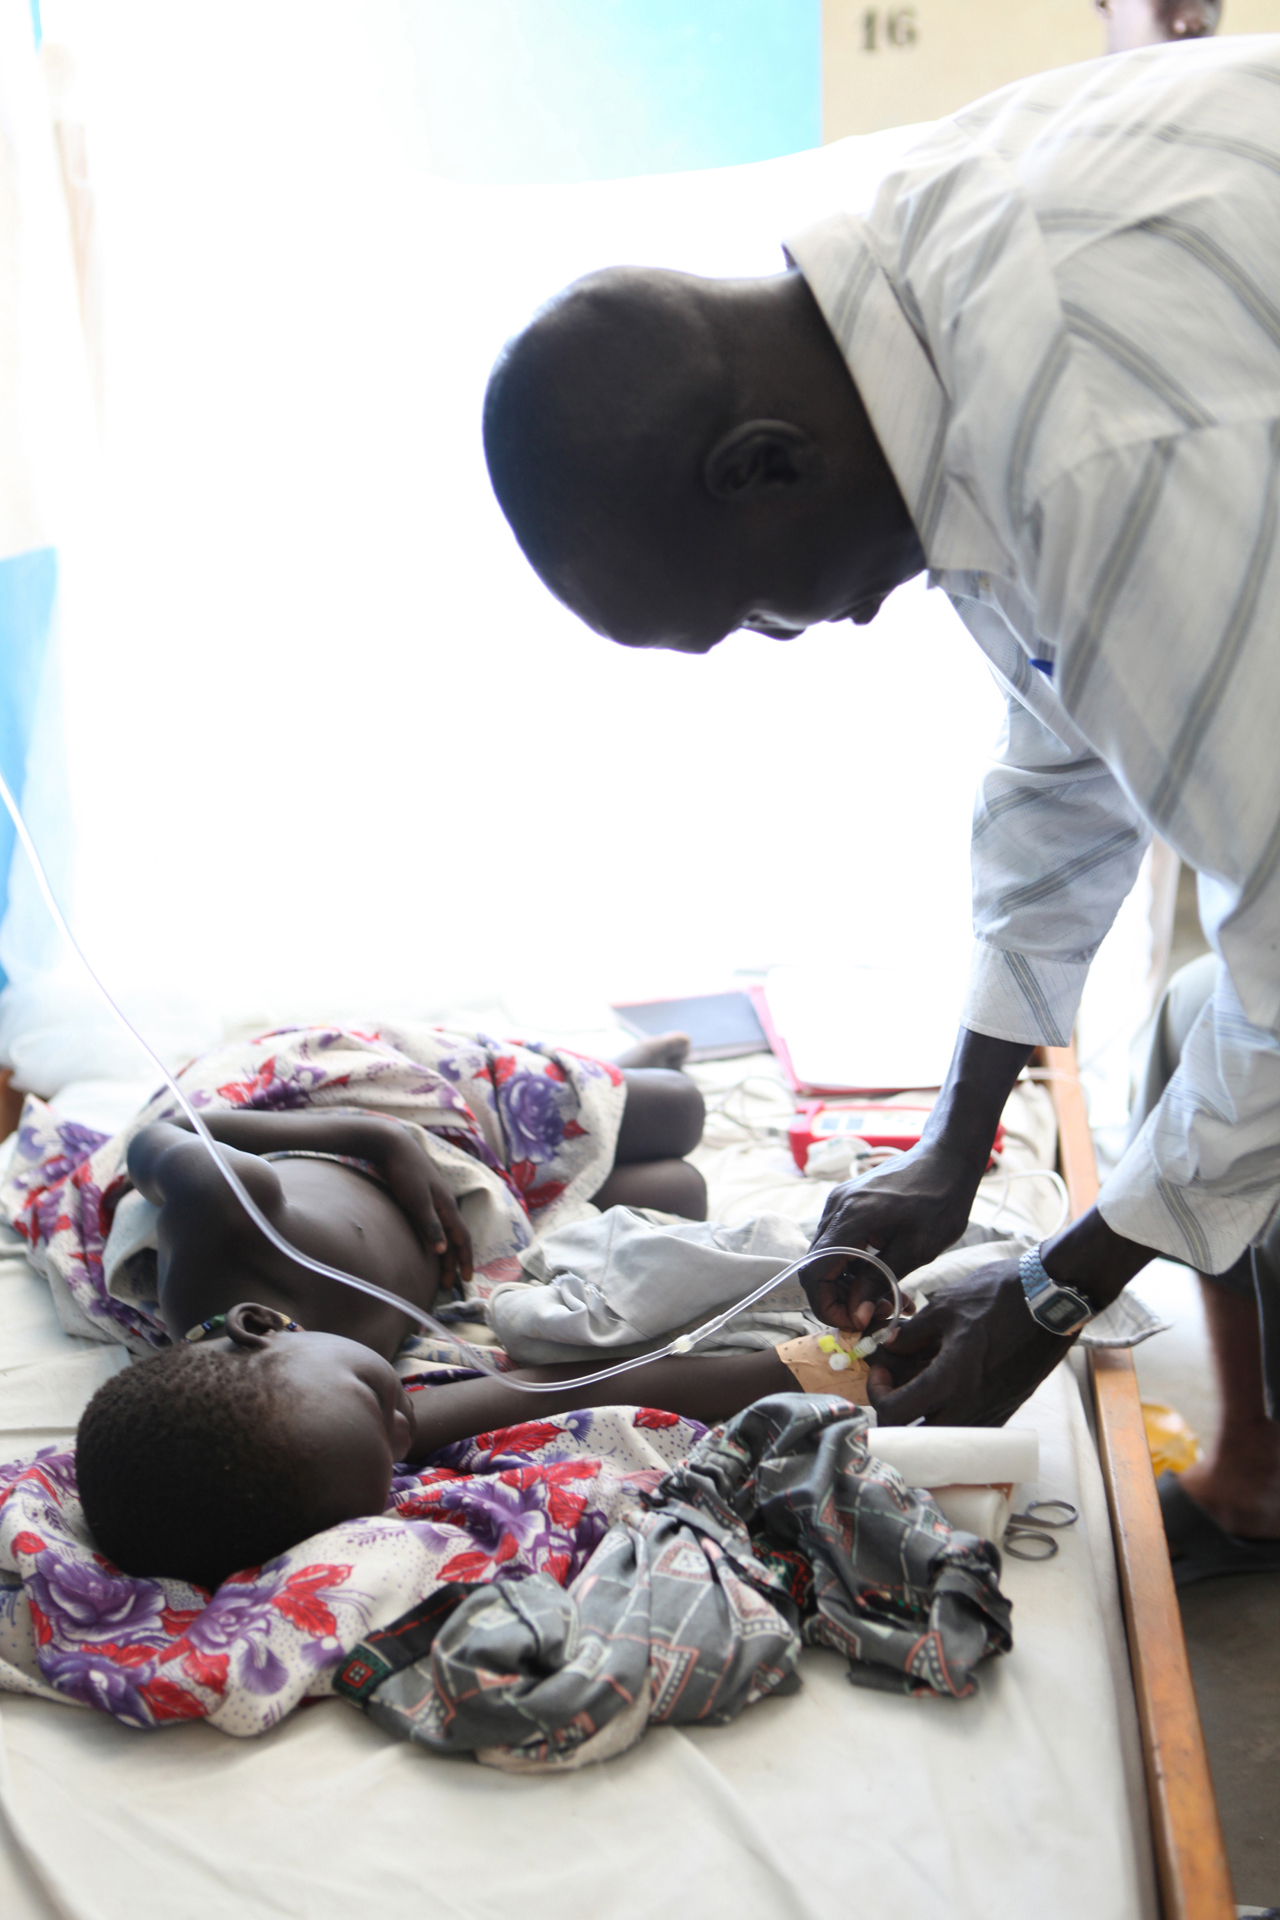 MSF Nurse Assistant James Mam Kongkong treats a girl suffering from cerebral malaria in the MSF Primary Health Care Center (PHCC) Pediatric Inpatient Ward in Pibor, Jonglei State. Pibor is one of the largest villages of the Murle people, who are an entirely nomadic community of cattle herders, and MSF is the only healthcare providing organisation operating in the area.